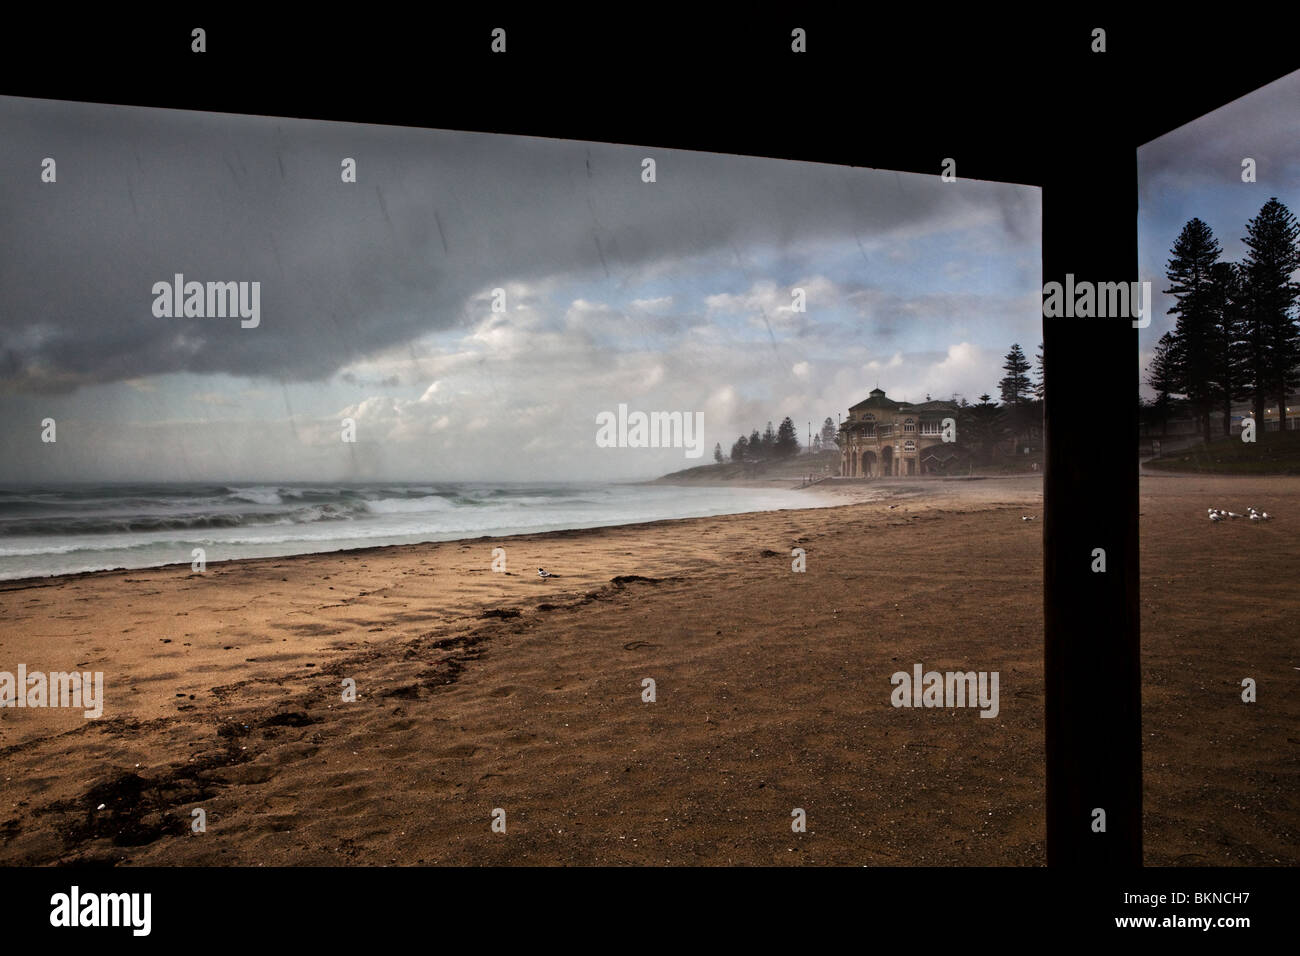 Rain pouring down at the beach, with visible streaks of rain. - Stock Image